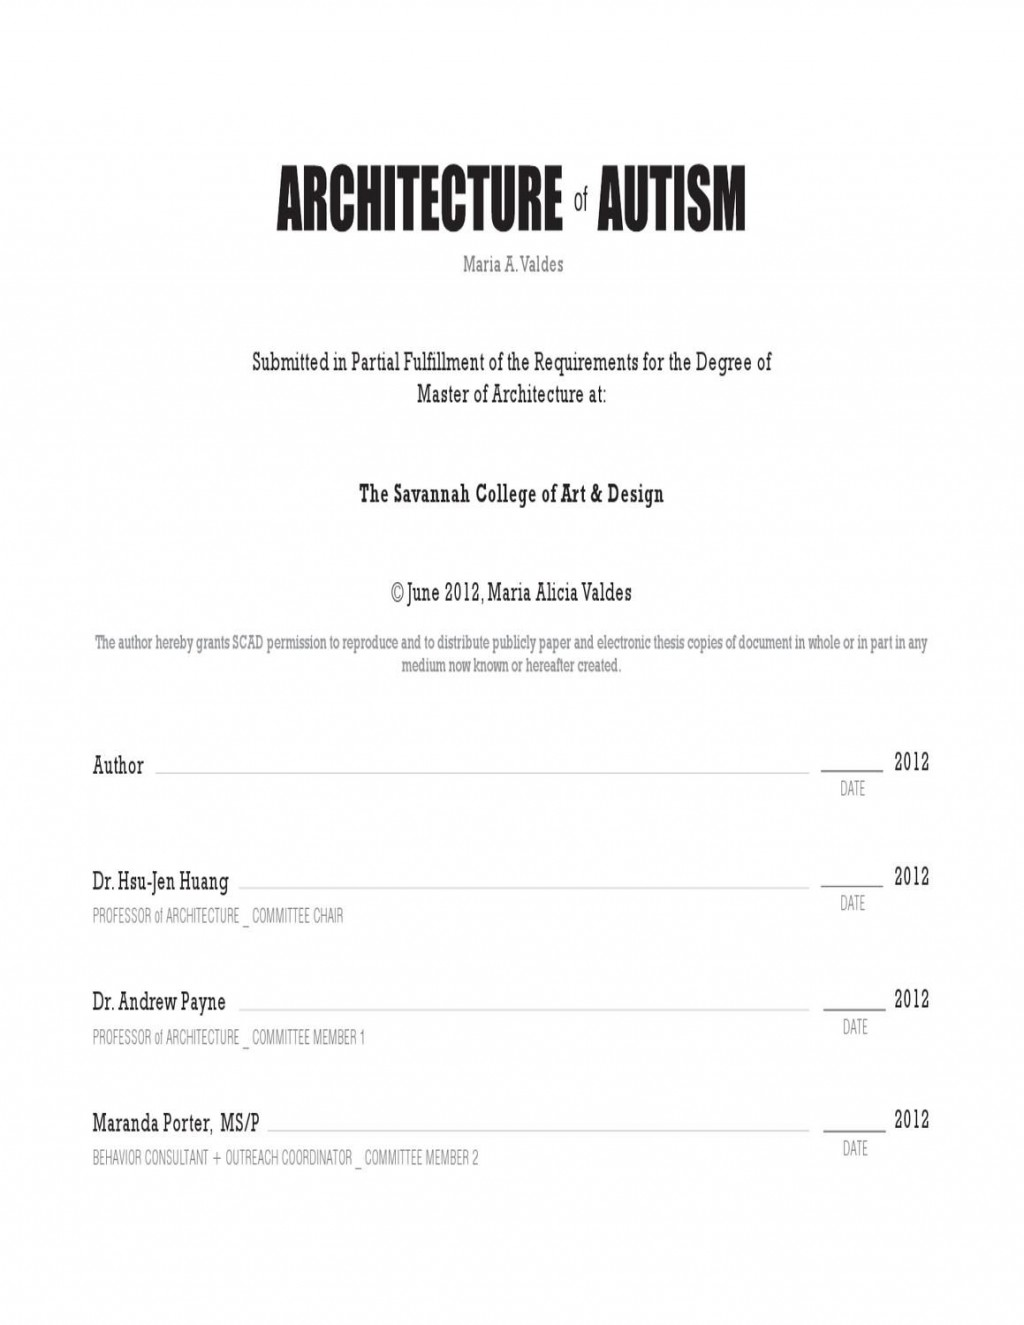 002 Research Paper Autism Fascinating Thesis Large